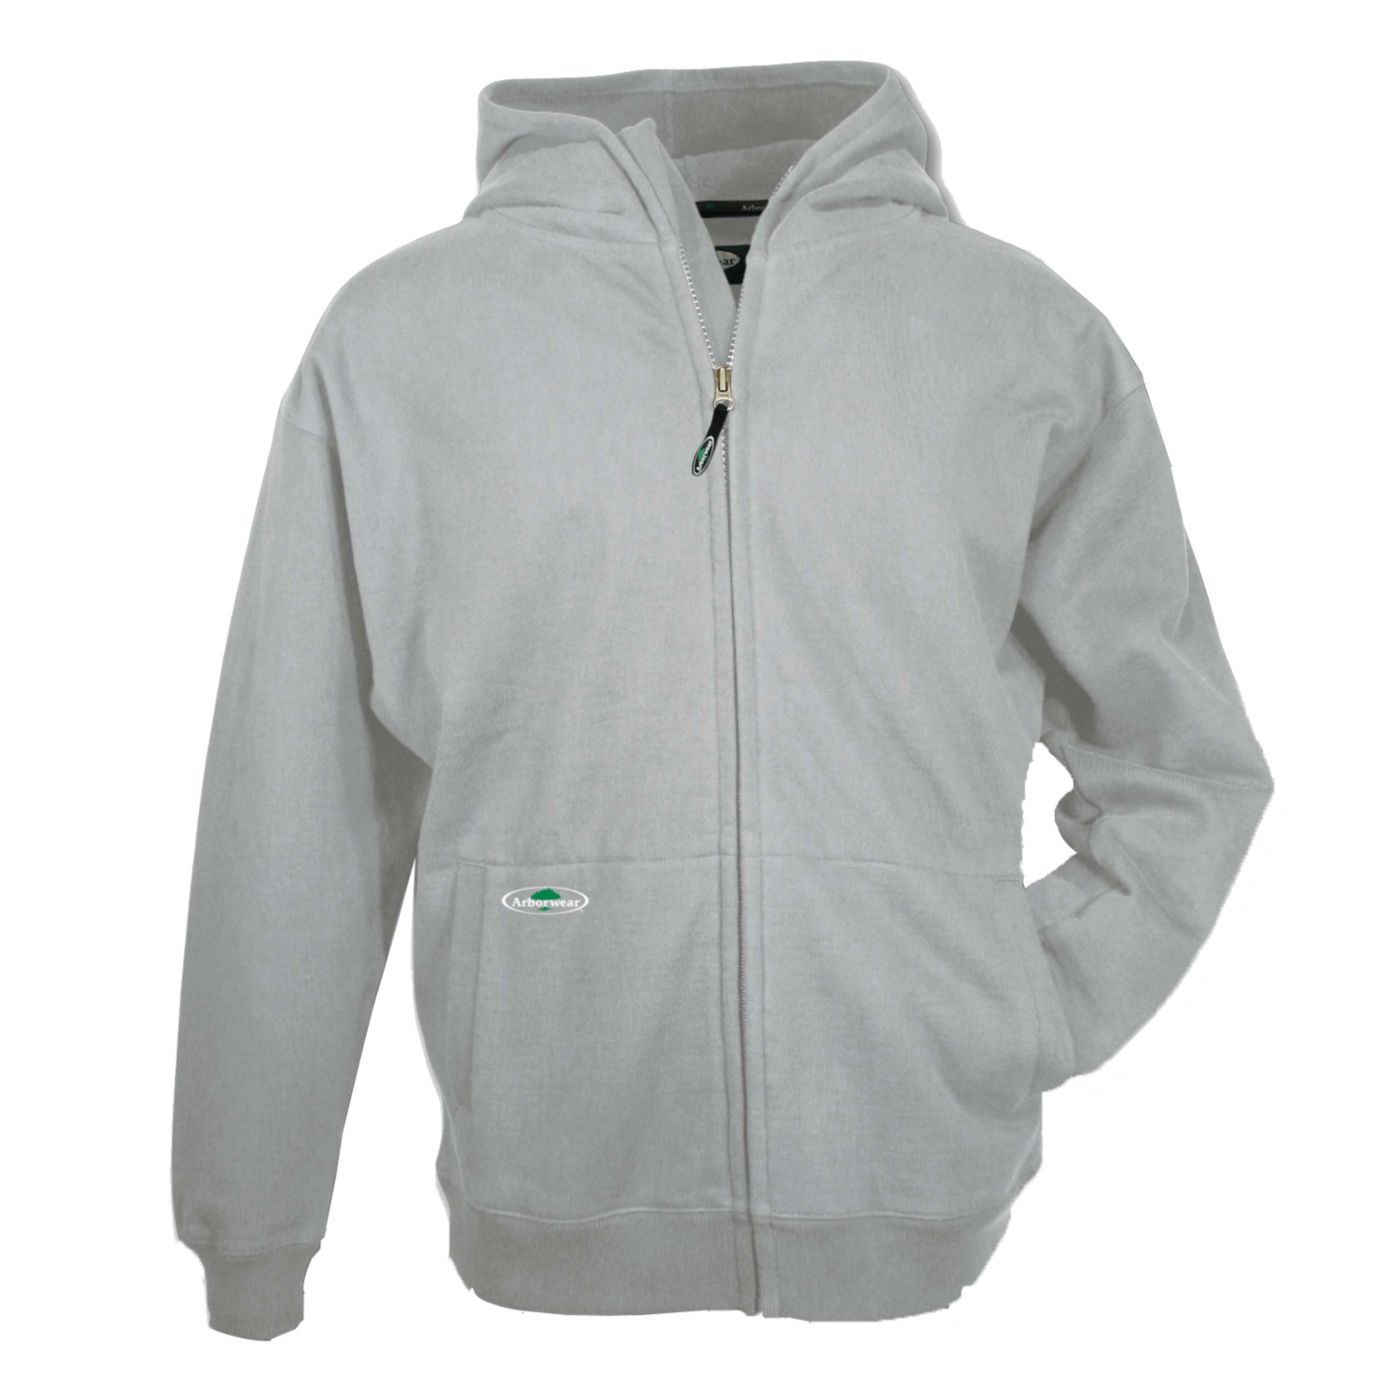 Arborwear Men's Double Thick Full Zip Hoodie (Regular and Big & Tall)